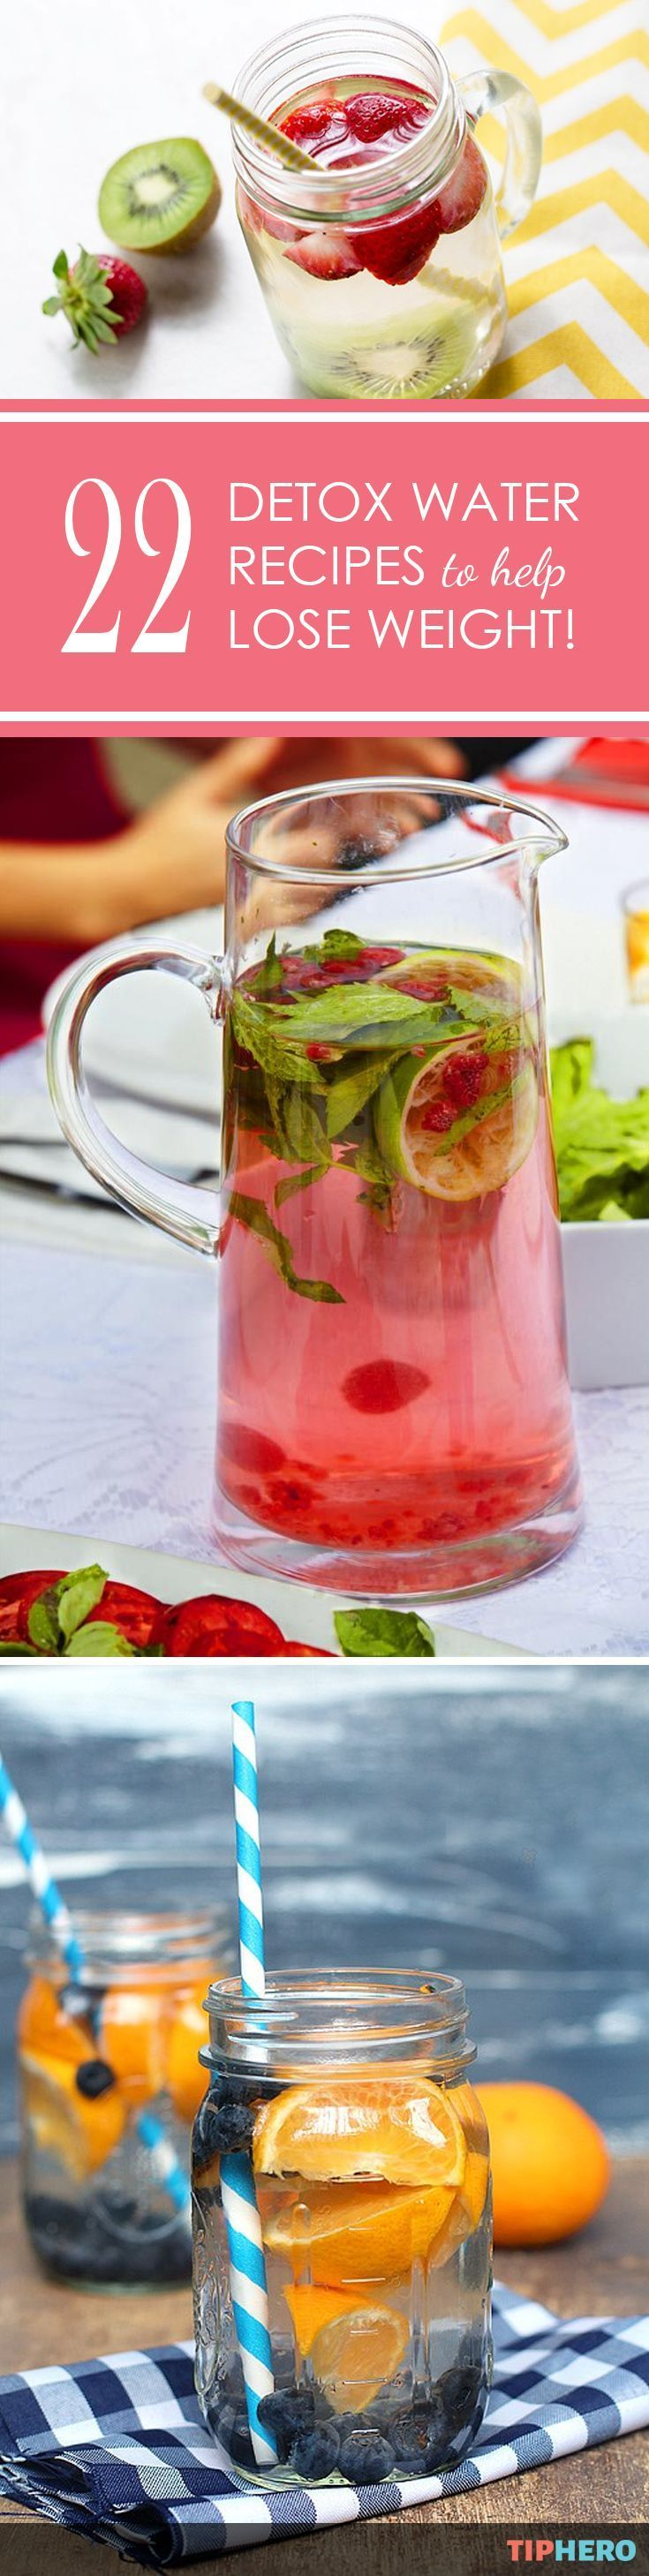 Healthy drinks & beverages recipes   The #1 most popular New Years resolution? You guessed it, eat healthier and lose weight. If getting healthy and dropping pounds is on your to-do list, what you drink can be just as important as diet and exercise. These 22 detox drink recipes from around the internet combine water, natural herbs and fruit to create delicious beverages that not only taste great but also have amazing health benefits. Healthy new year, here you come! Click for the full list.